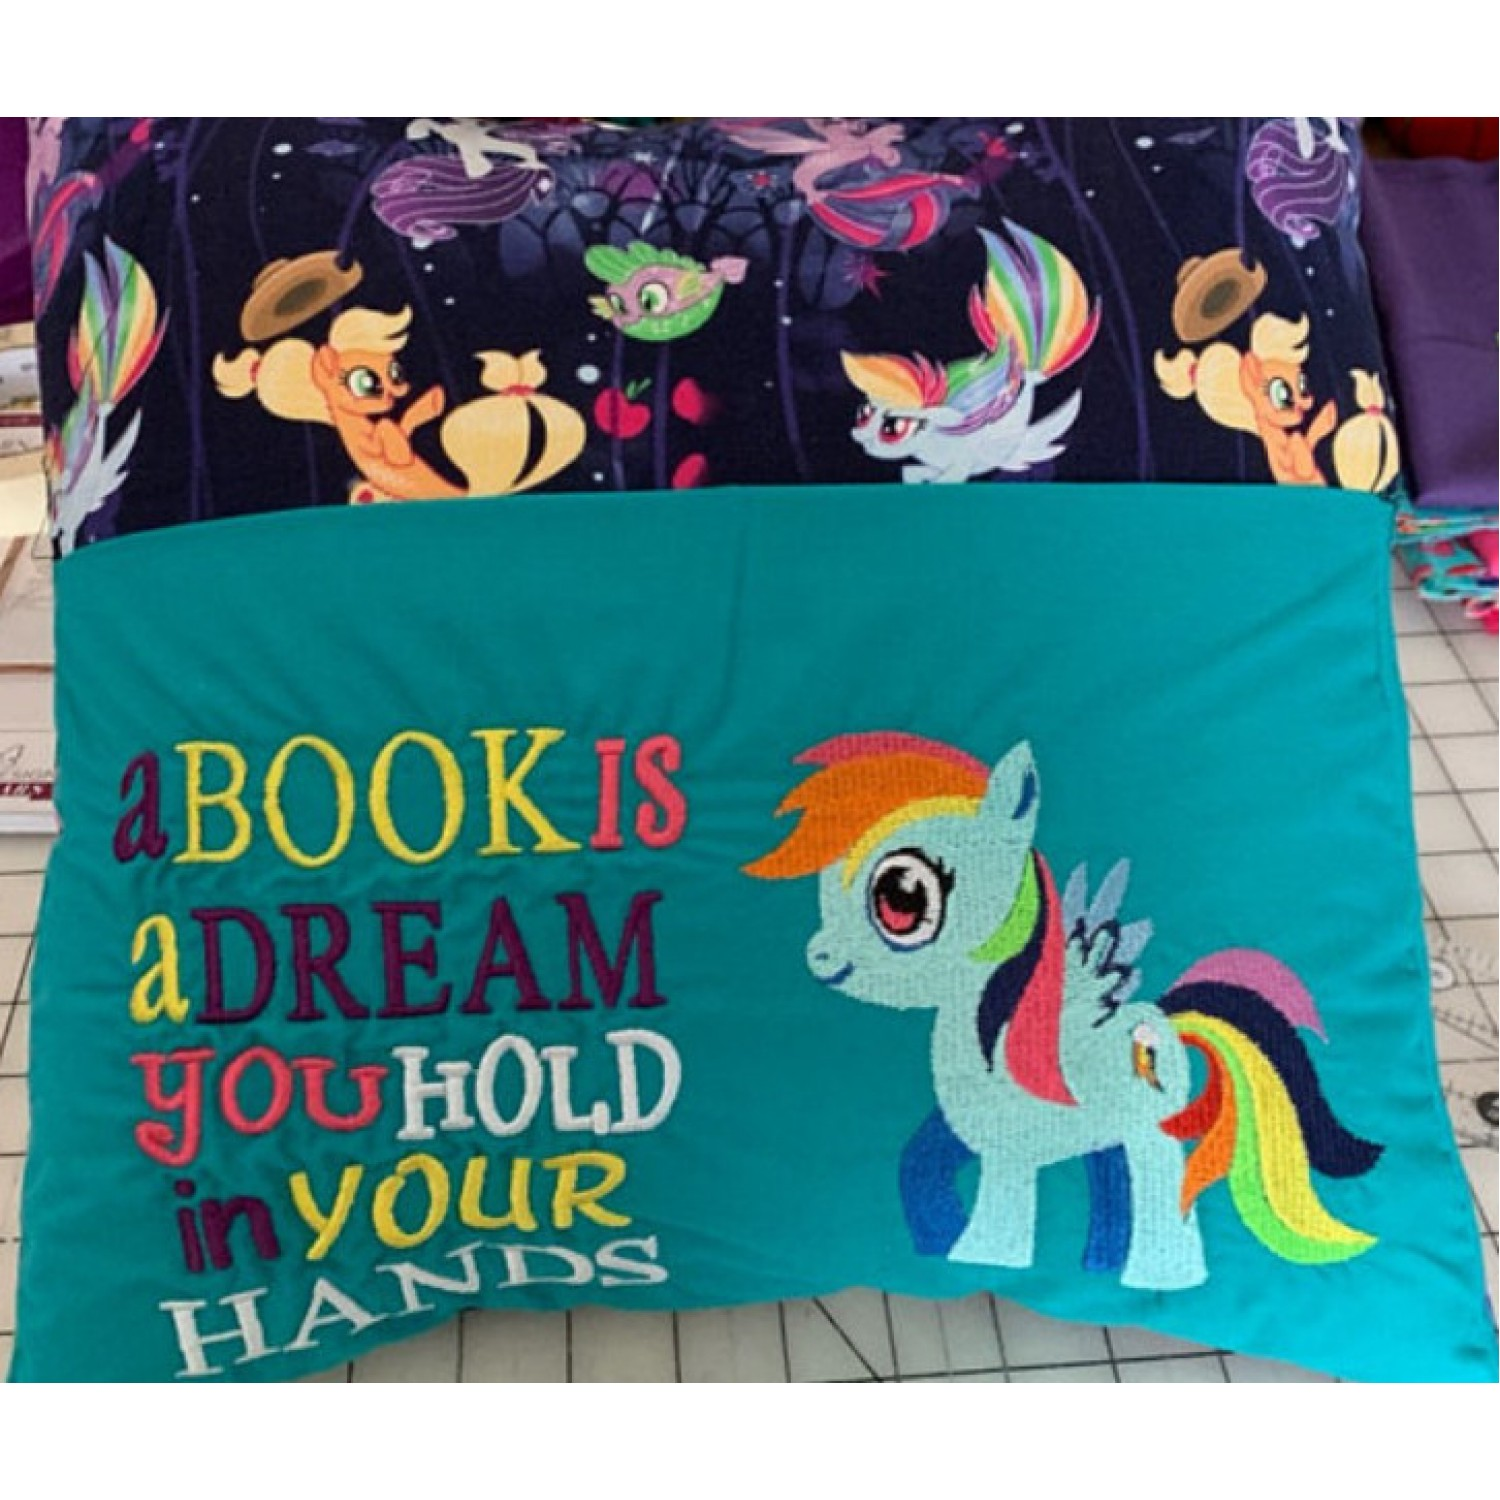 My little pony with a book is a dream